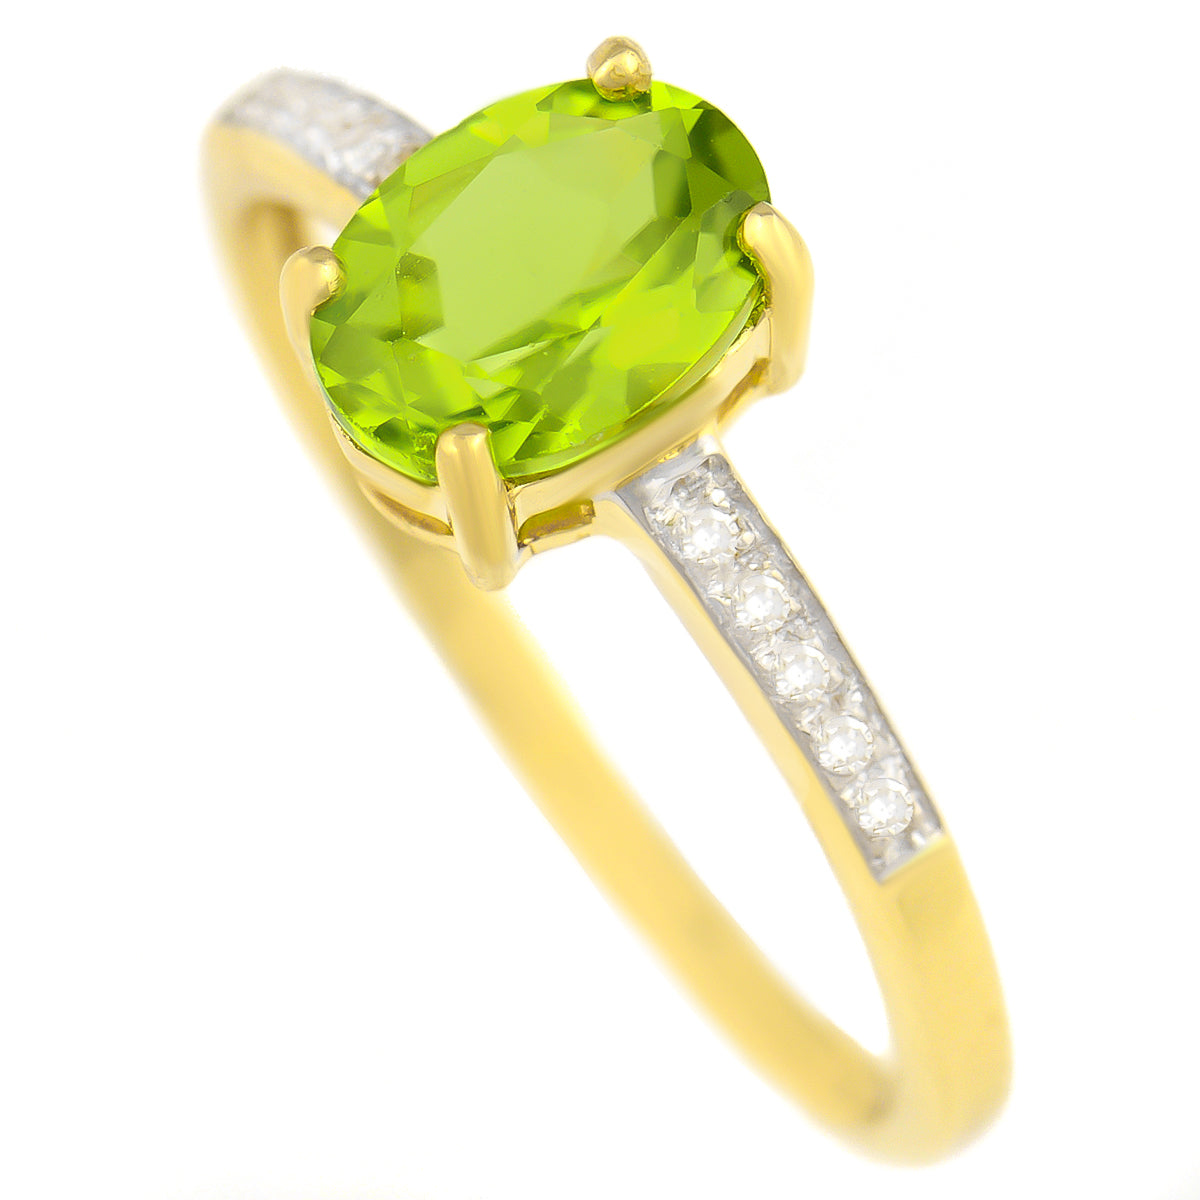 9K SOLID GOLD 1.30 CT NATURAL OVAL PERIDOT RING WITH 10 DIAMONDS.